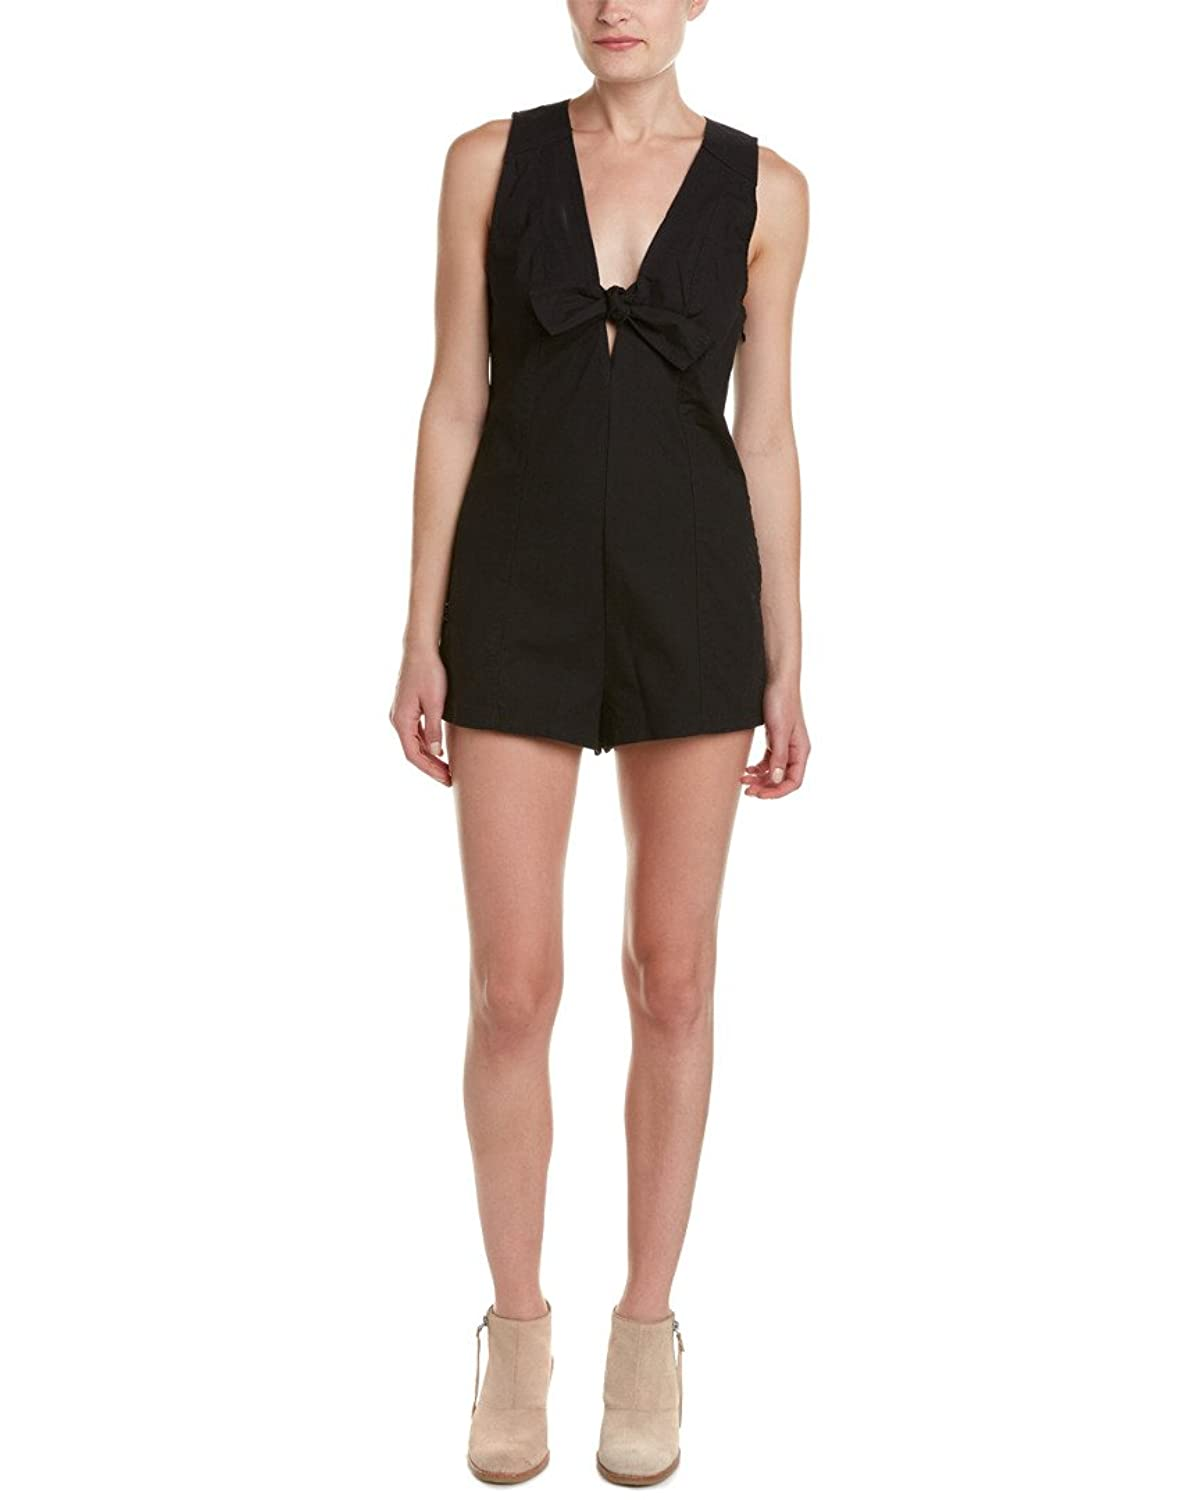 Free People Womens Keyhole Cut-Out Back Romper Black 2